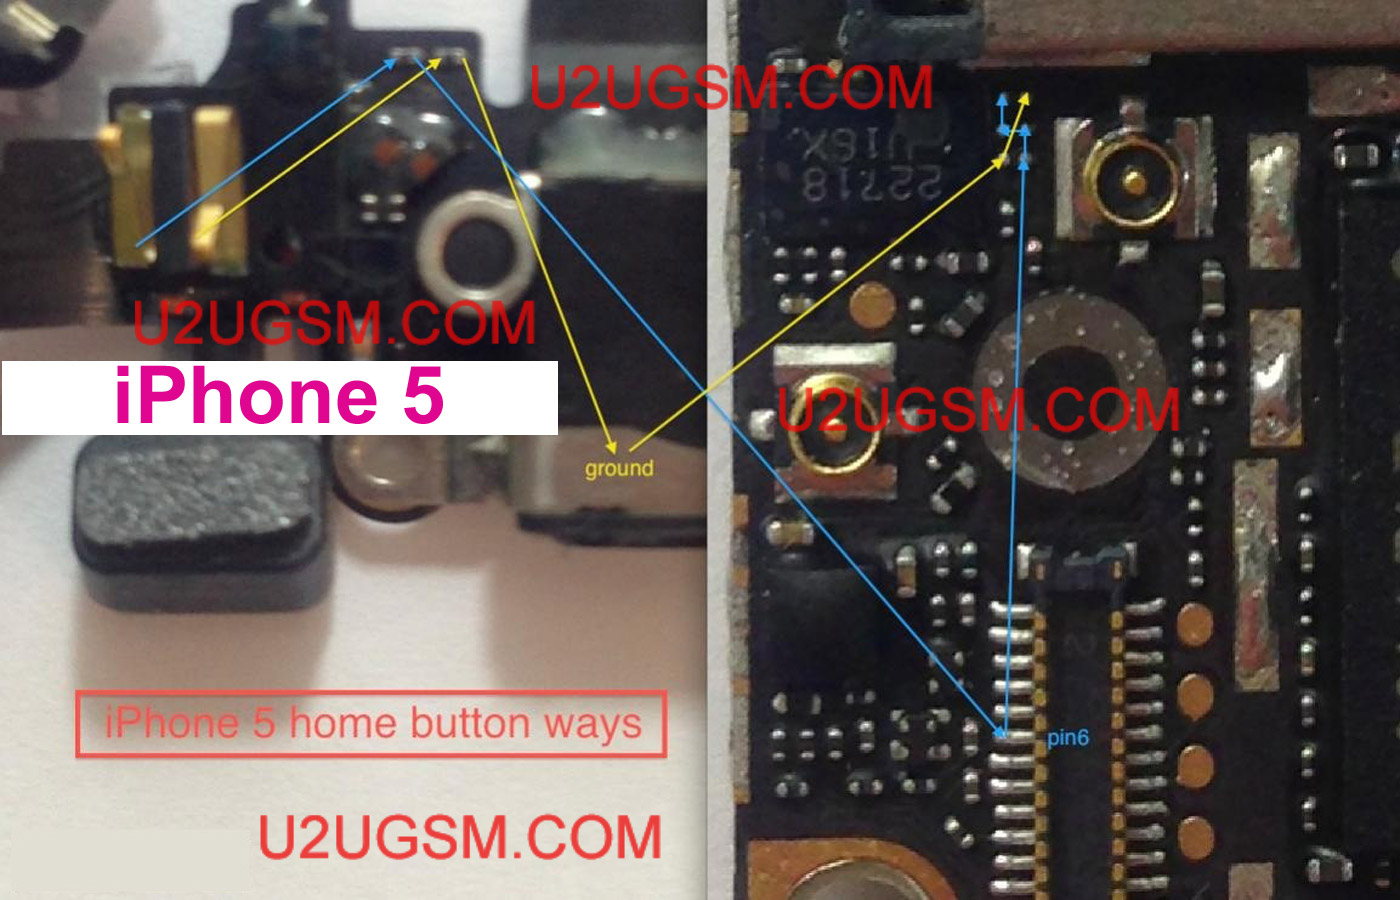 Wii Parts Diagram likewise Iphone 5 Home Button Problem Solution Not Working Jumpers furthermore 10457 as well Samsung Note 4 Galaxy Alpha as well Ipod Shuffle Headphone Stereo Jack Wiring Diagram Wiring Diagrams. on iphone 4 schematic diagram